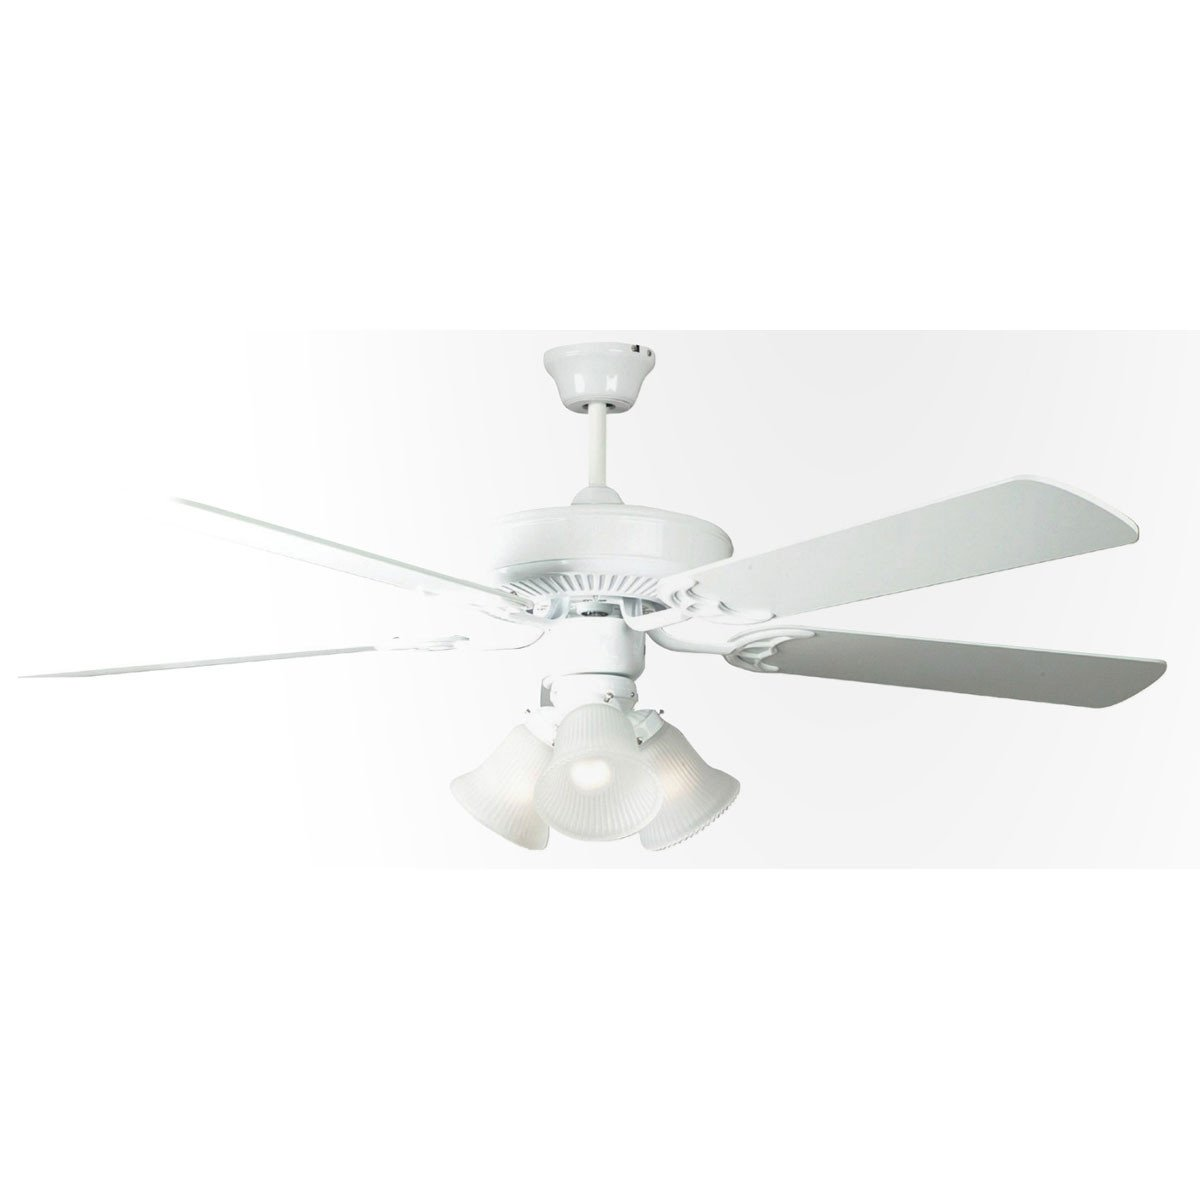 "Concord Fans 52"" Home Air White Modern Ceiling Fan with 3 Lights Kit"